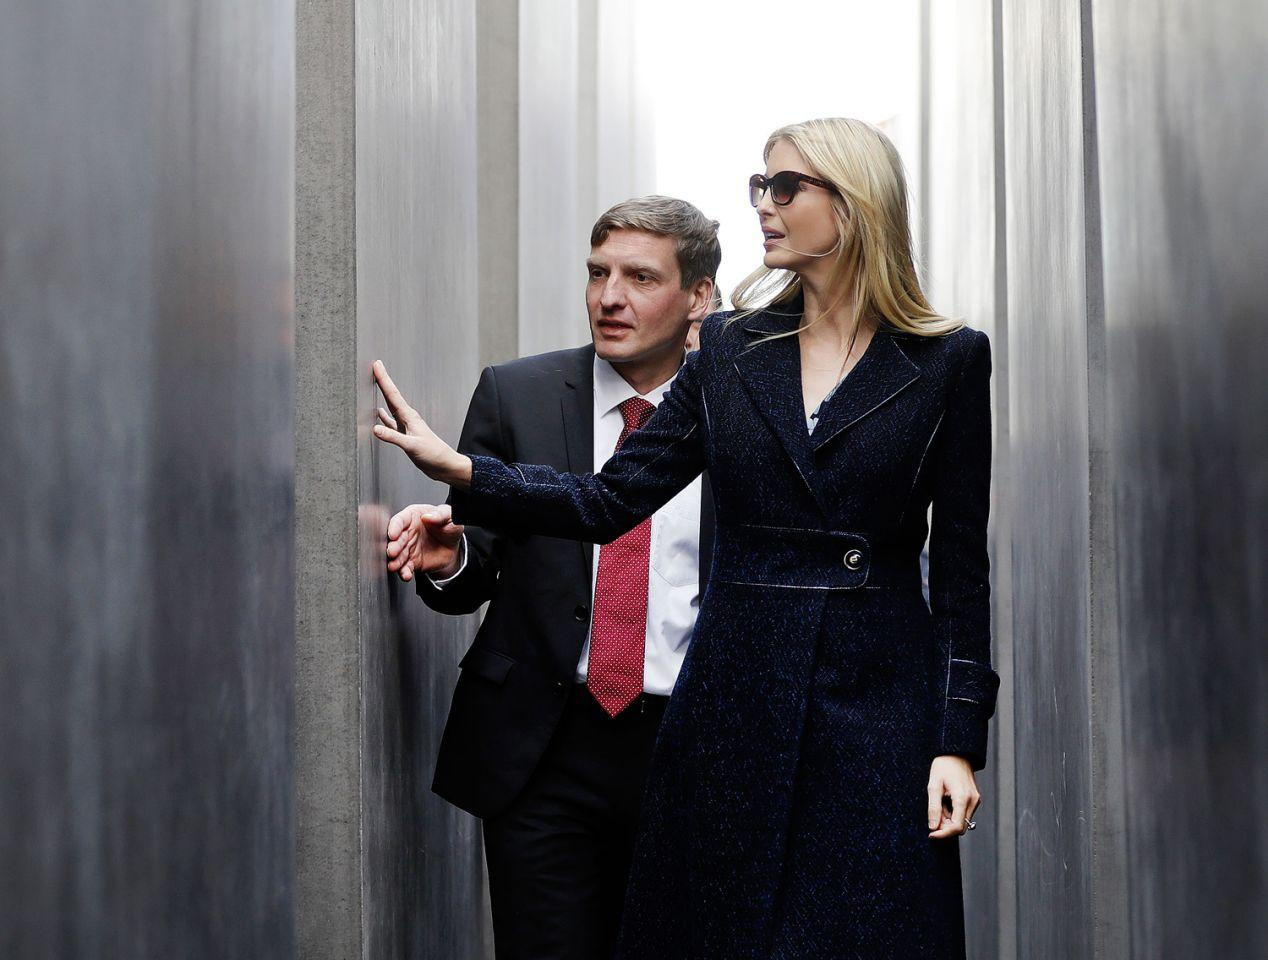 "<p>Die Tochter und Beraterin des US-Präsidenten Donald Trump, Ivanka Trump, besucht das Holocaust-Mahnmal in Berlin. Sie weilt zum ""Women20 Summit"" in der Hauptstadt. (Bild: AP Photo/Michael Sohn, Pool) </p>"